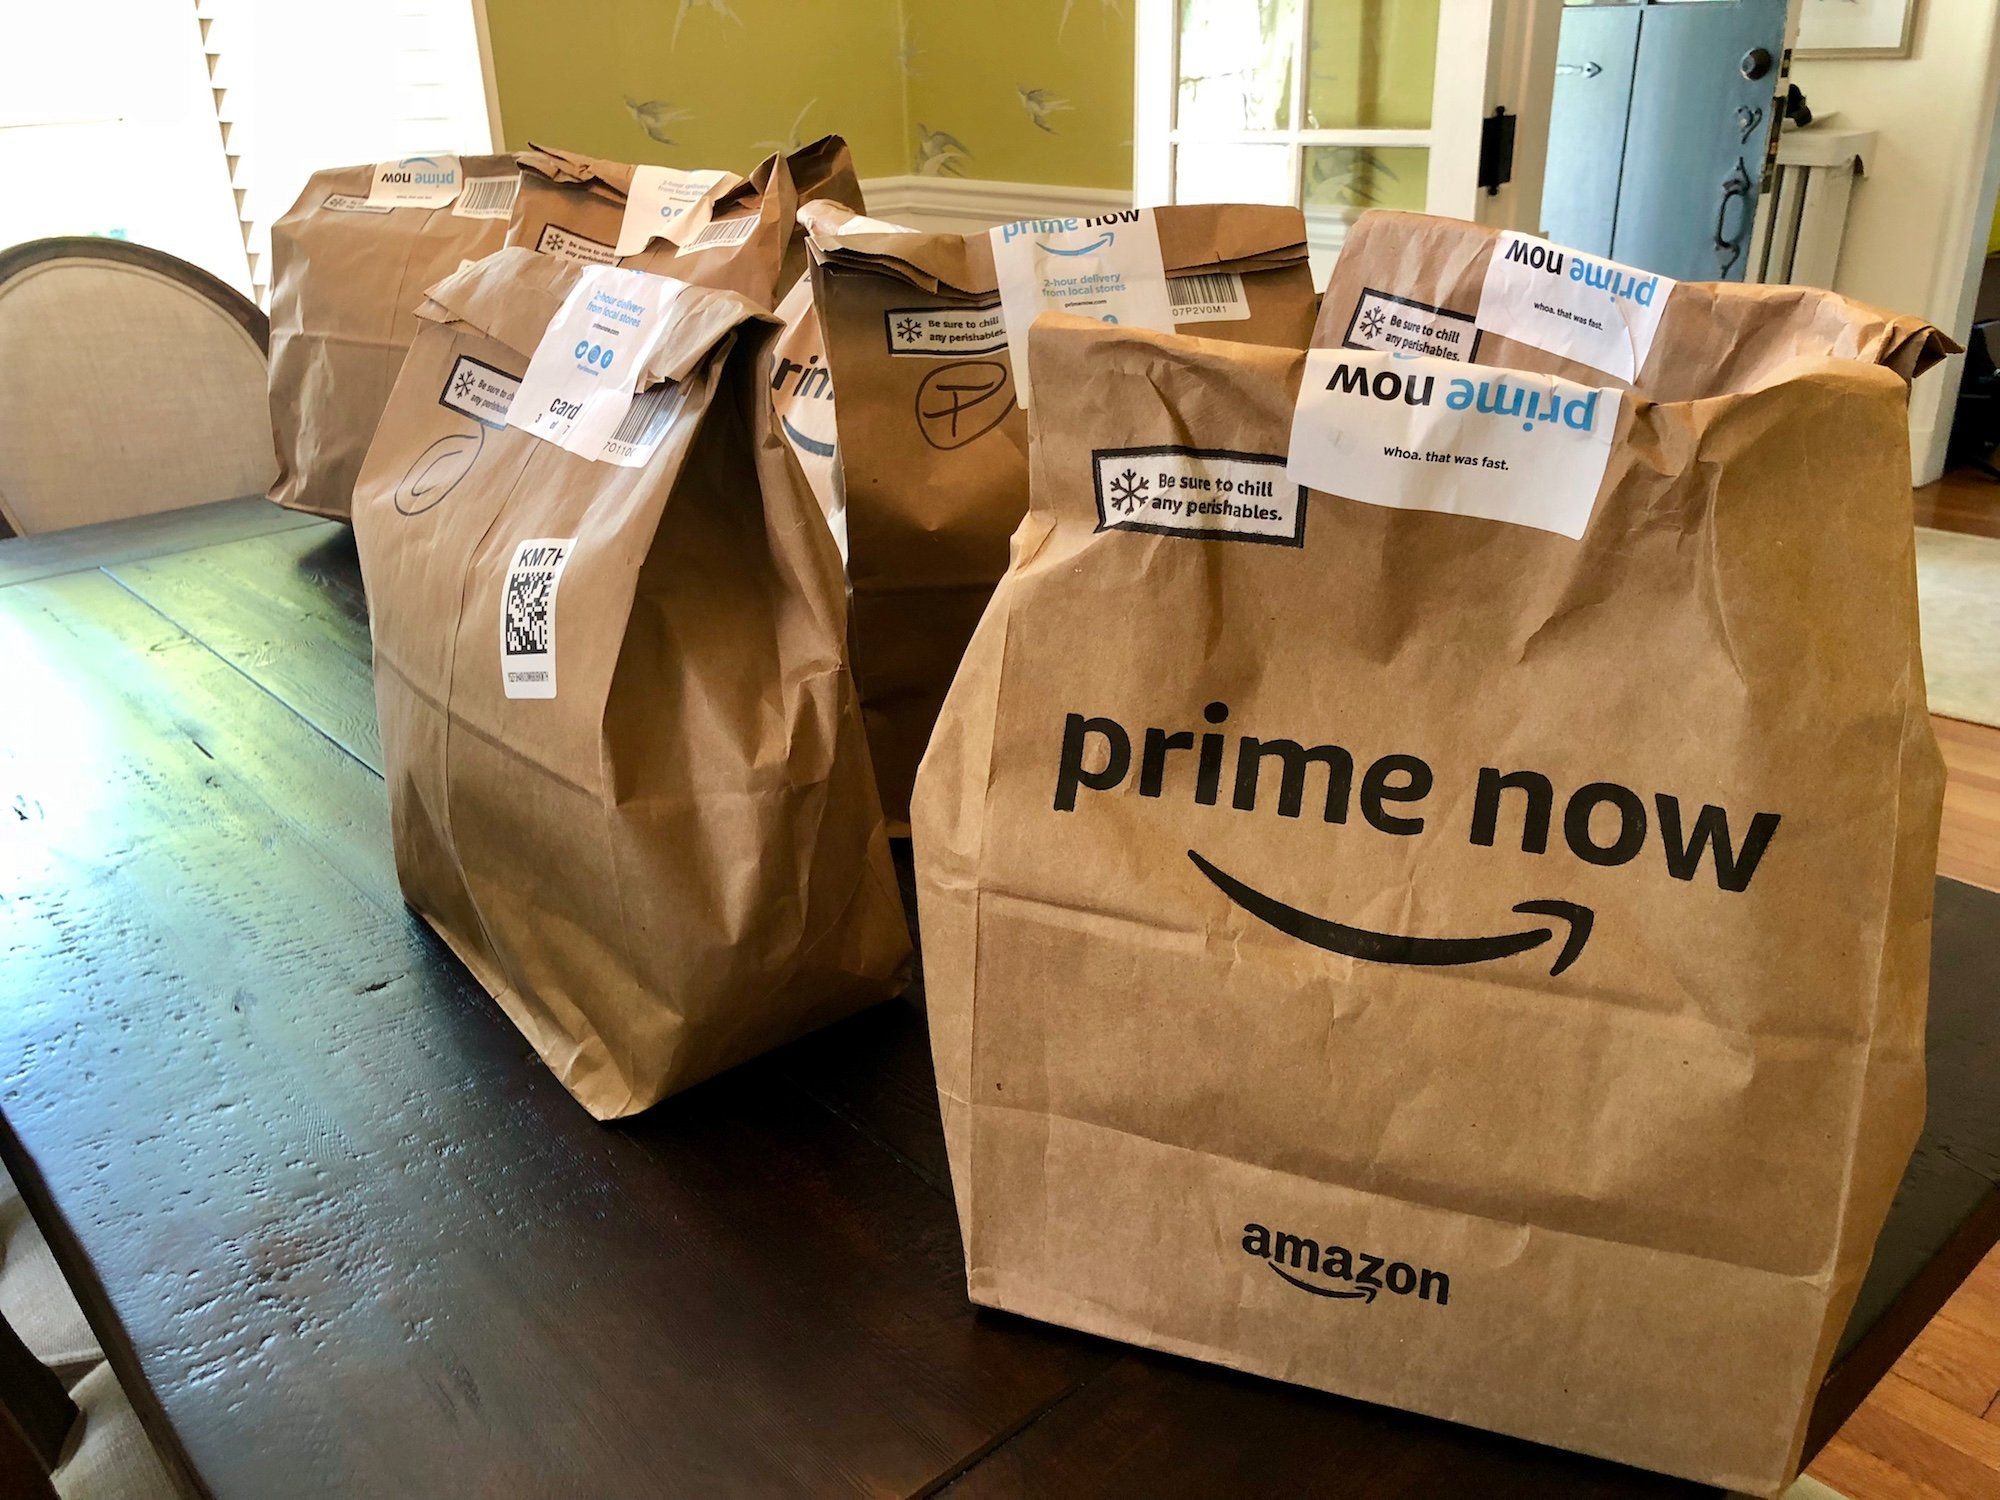 Amazon Prime Whole Foods delivery isn't free review